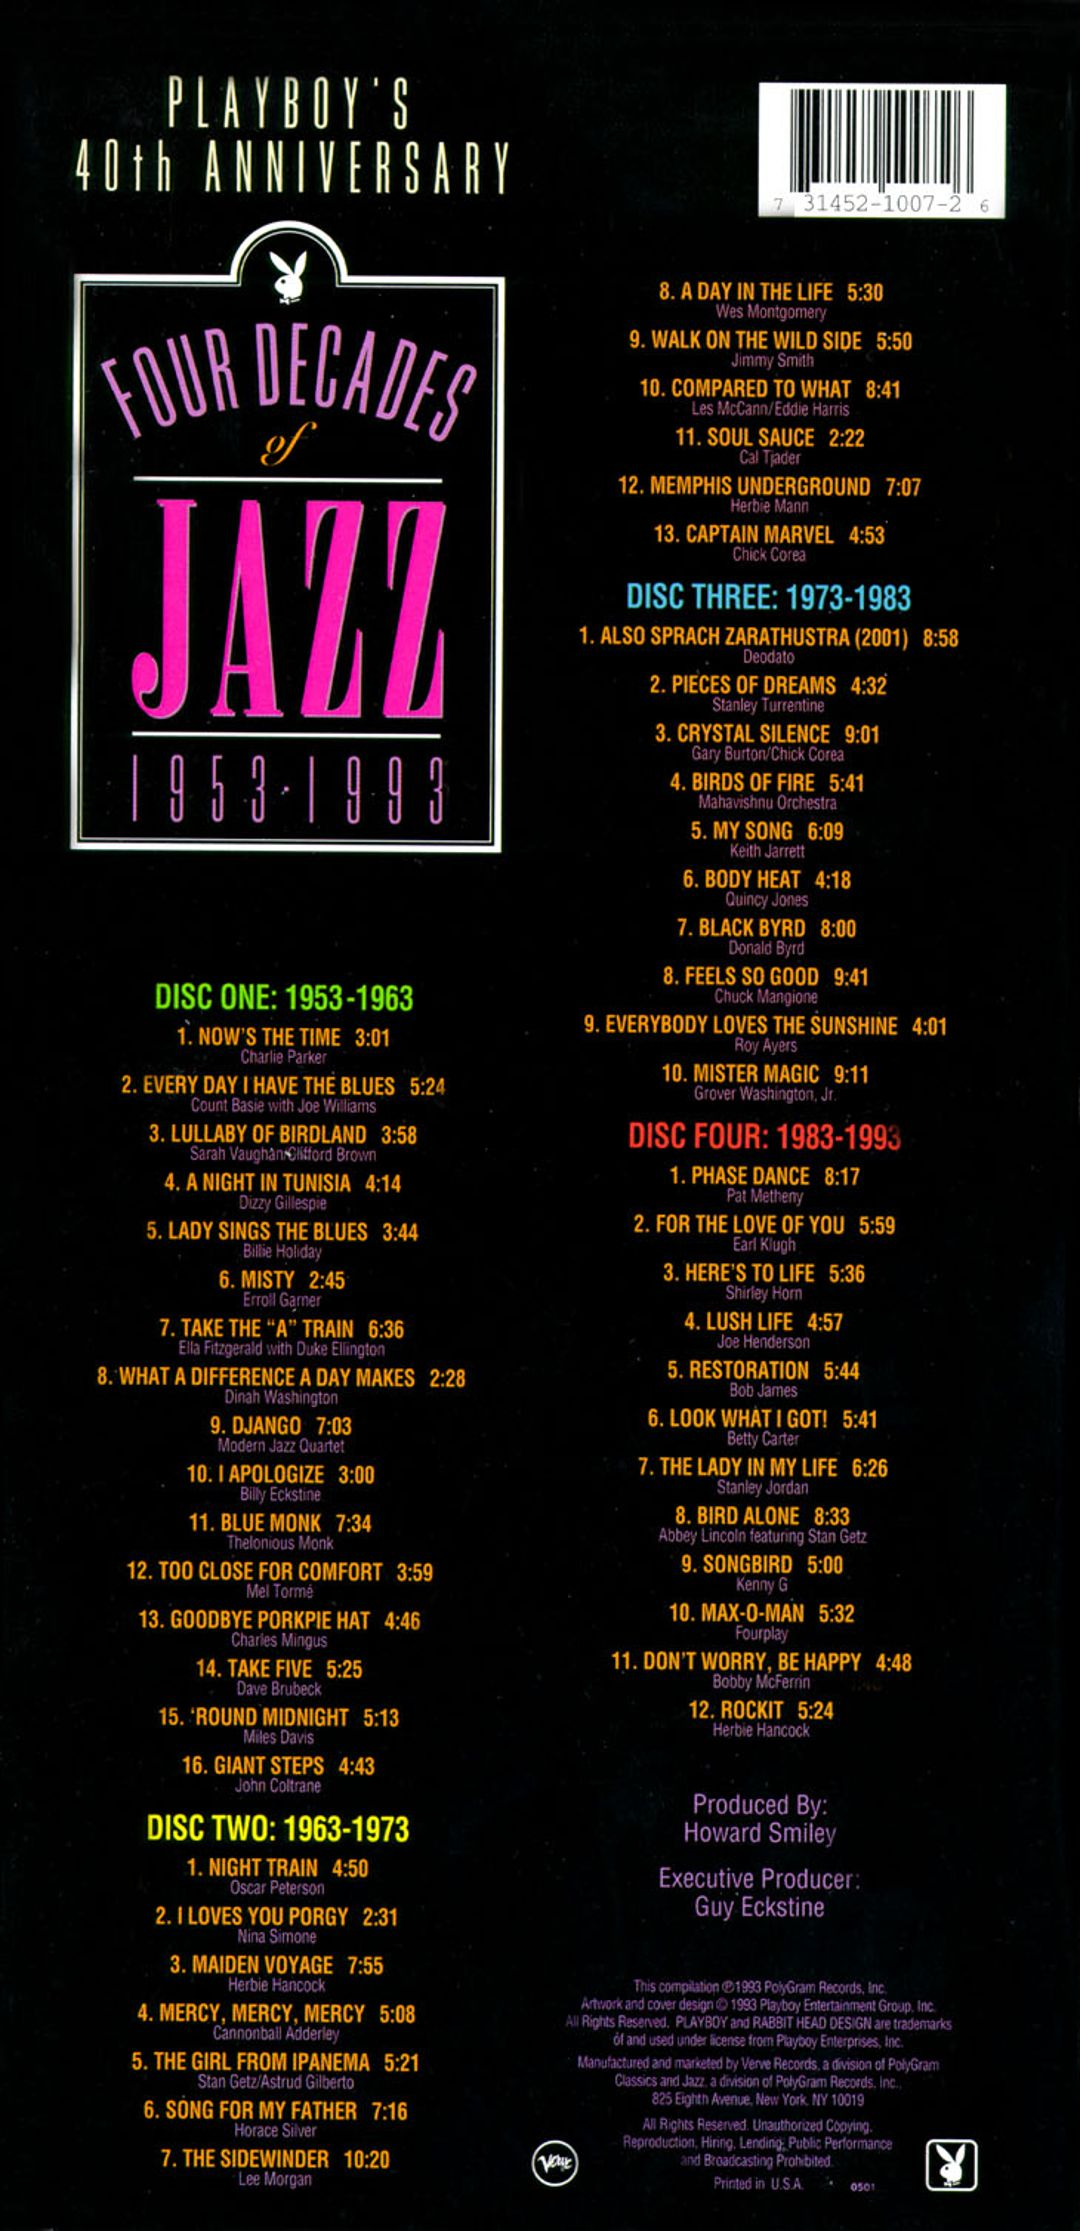 Playboy's 40th Anniversary: Four Decades of Jazz 1953-1993